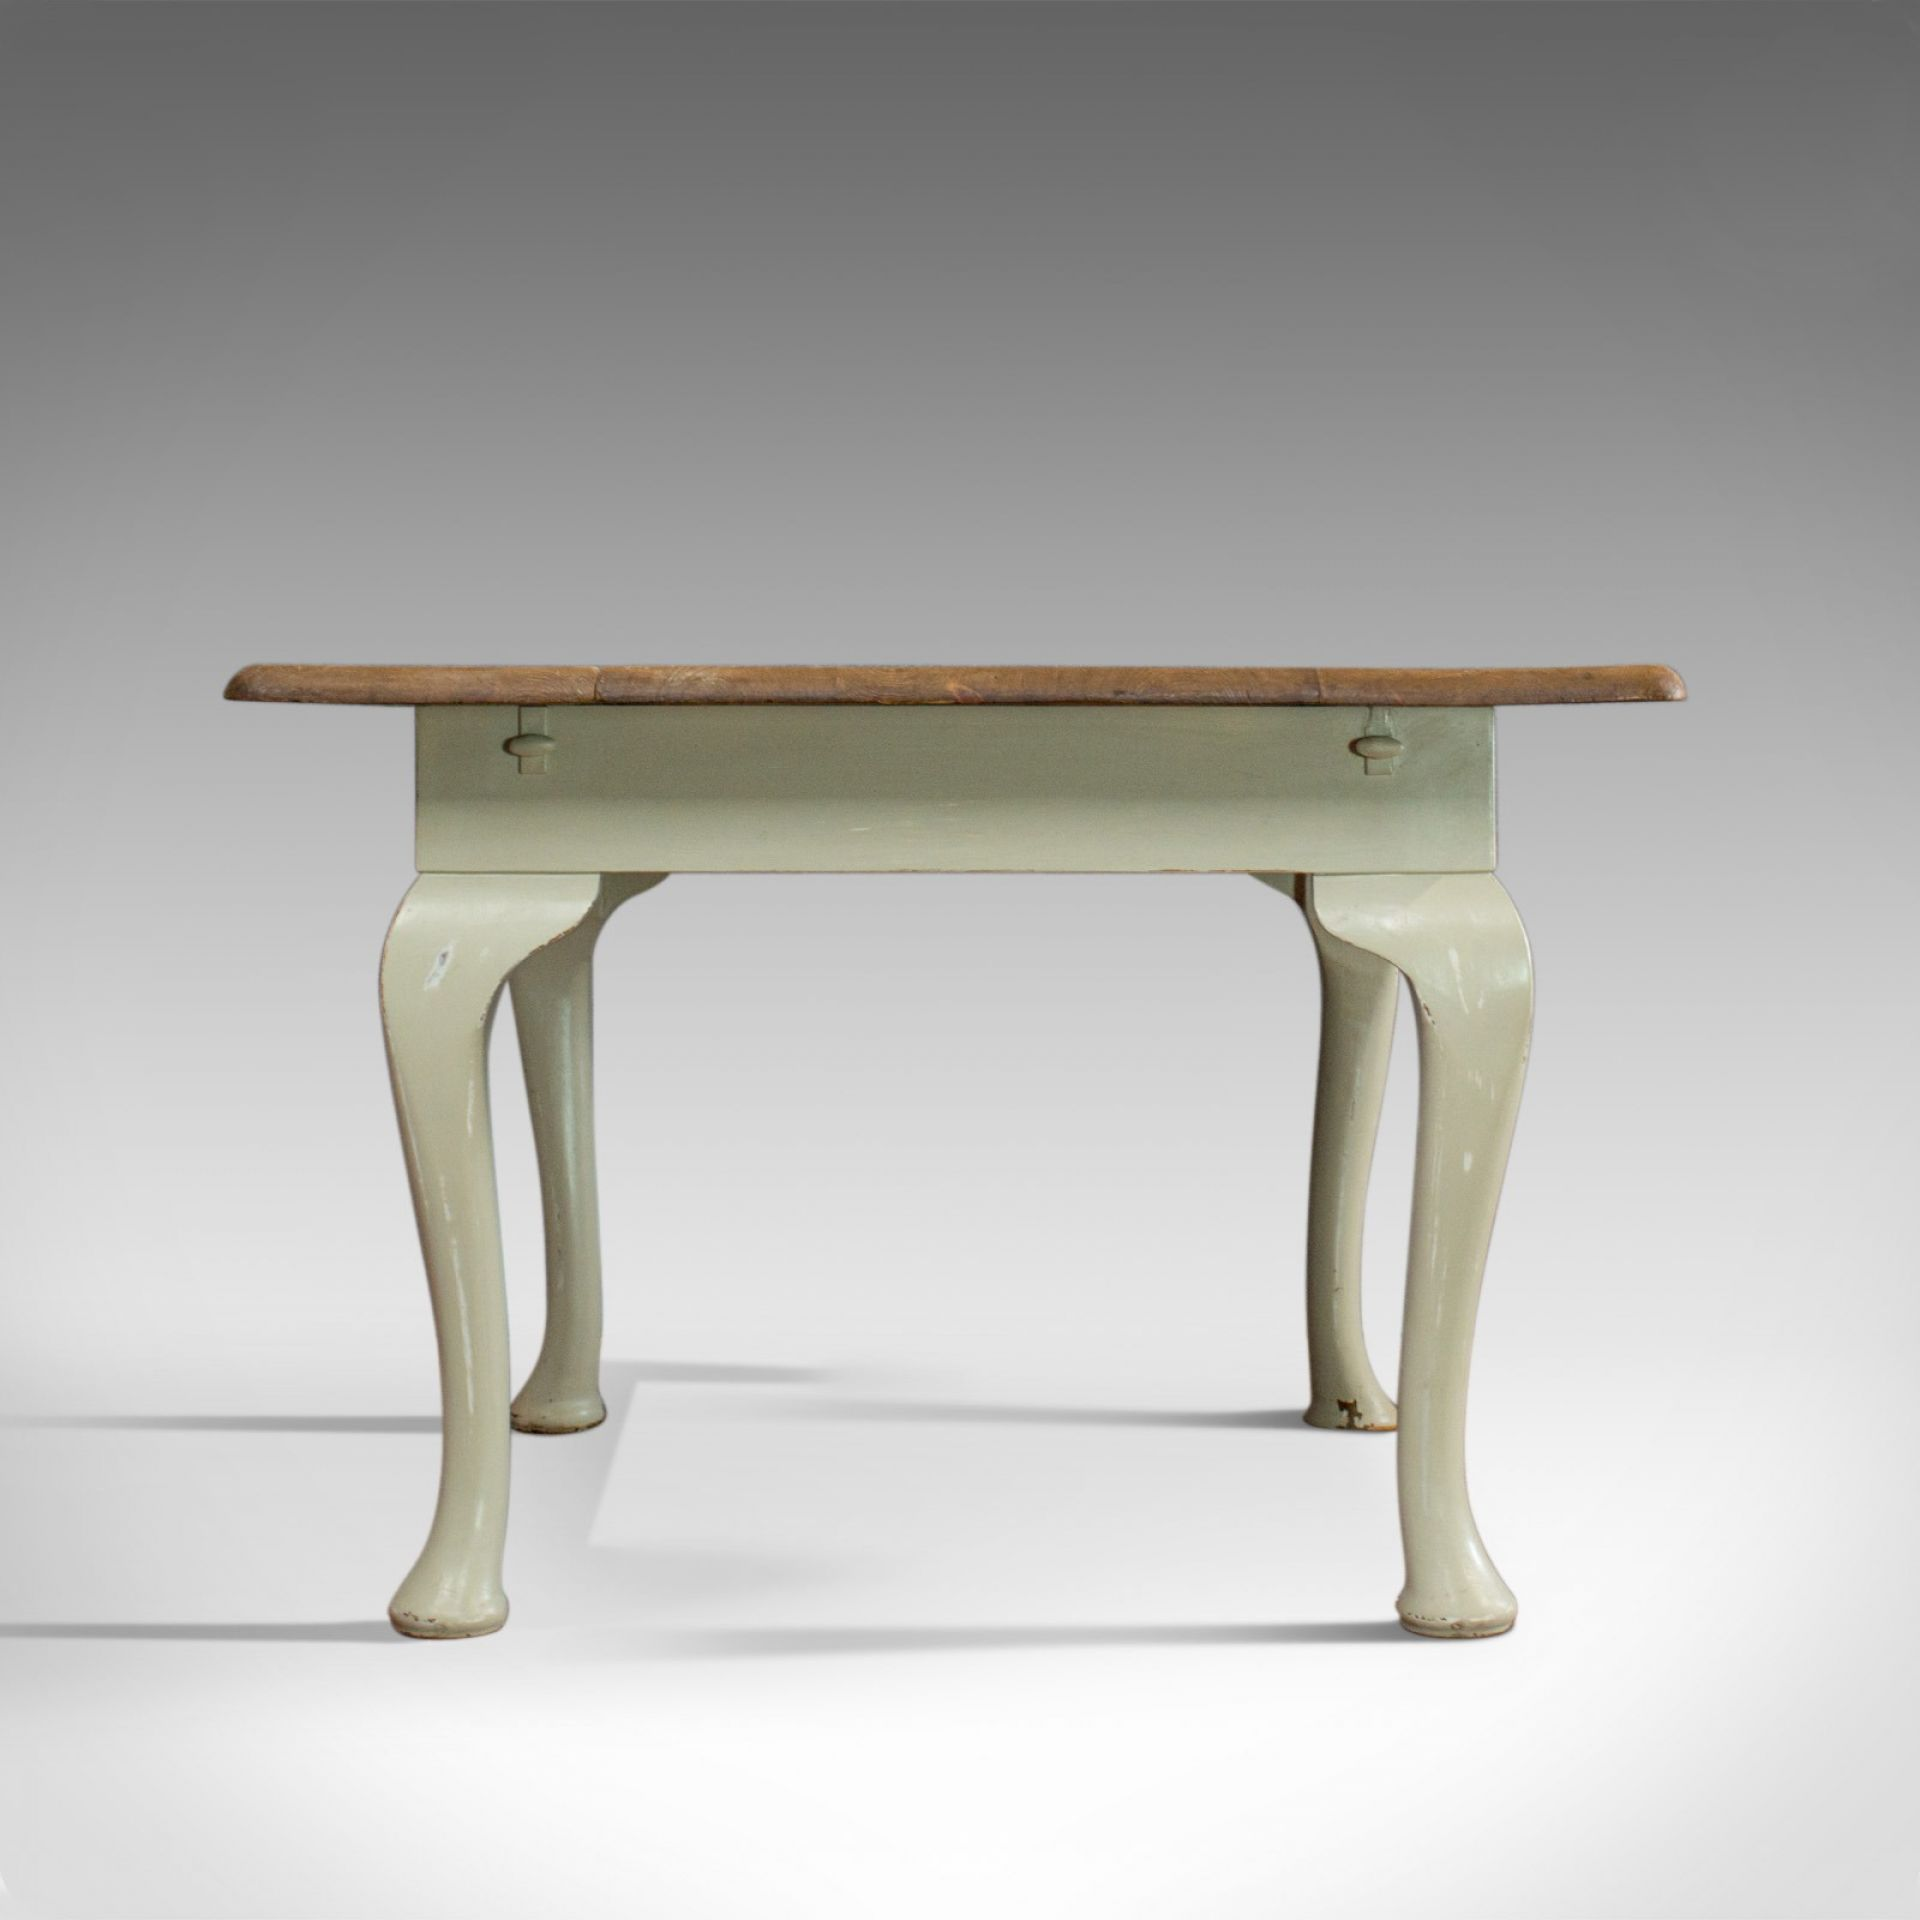 Antique Dining Table, Square, Pine, Mahogany, Country Kitchen, Seats Four c.1900